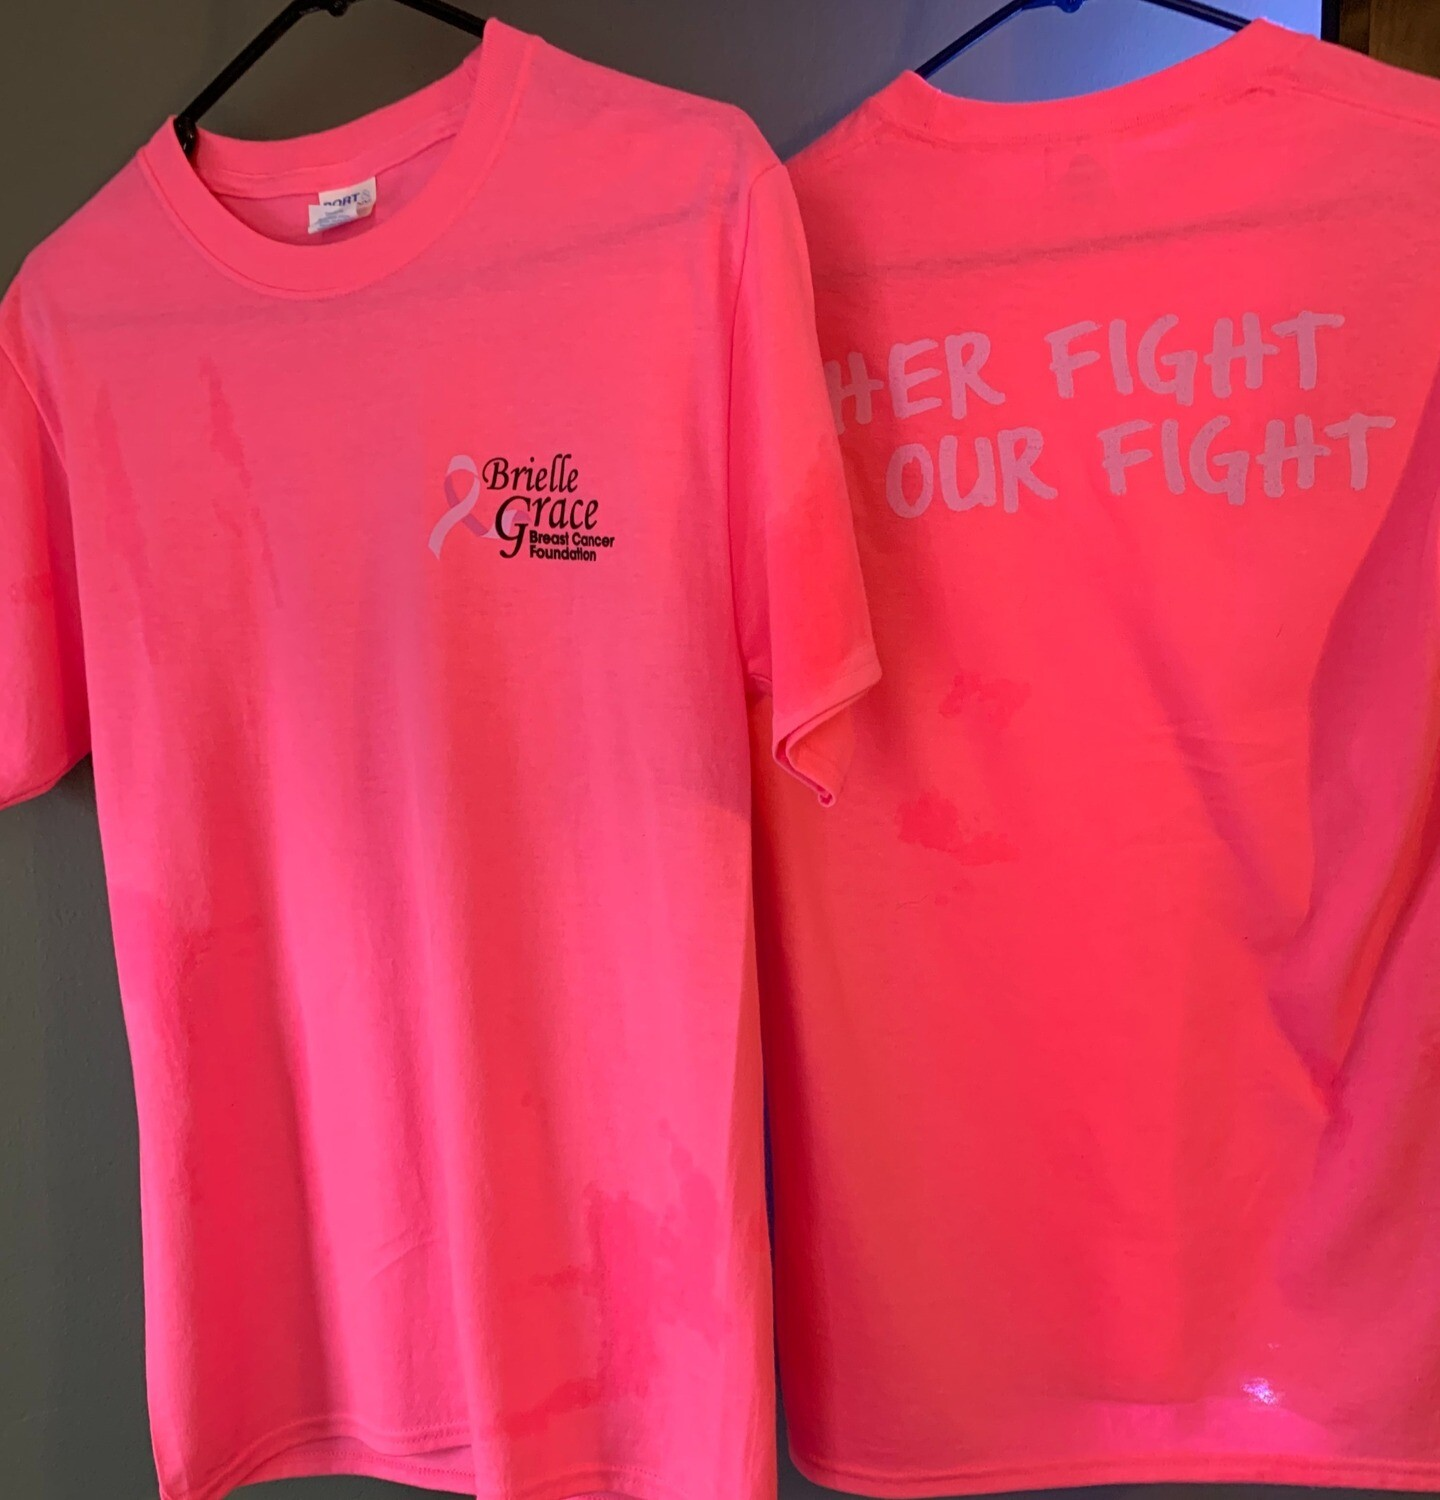 Brielle Grace Logo Shirts   Pink shirt Her Fight is our fight ! Donation